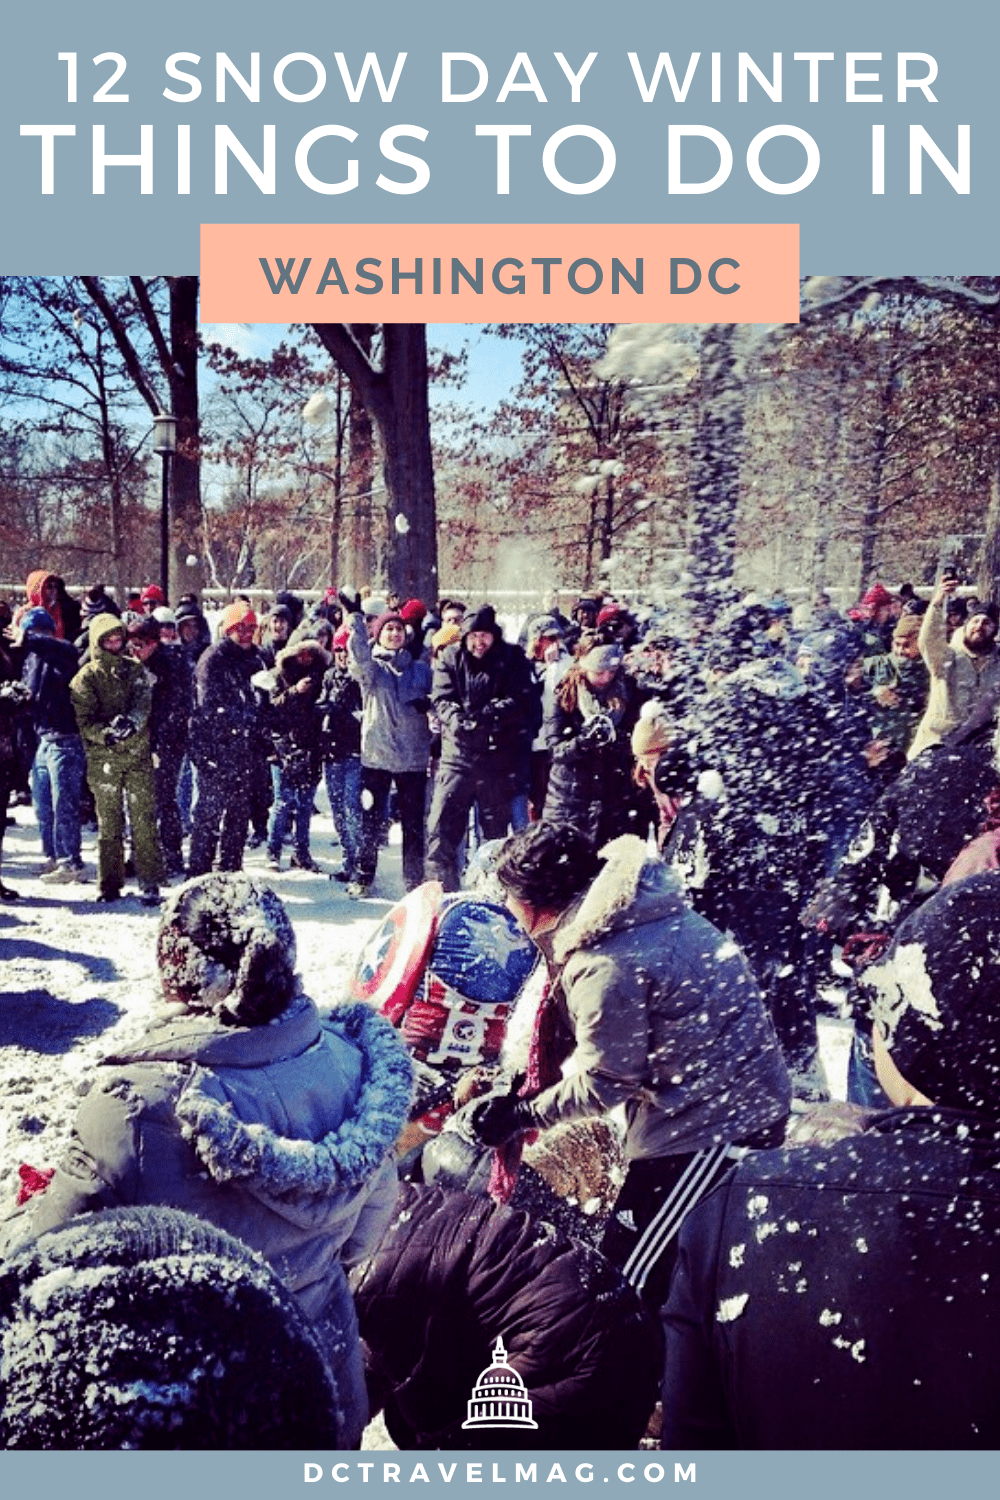 Snow Day Winter Things To Do In Washington DC